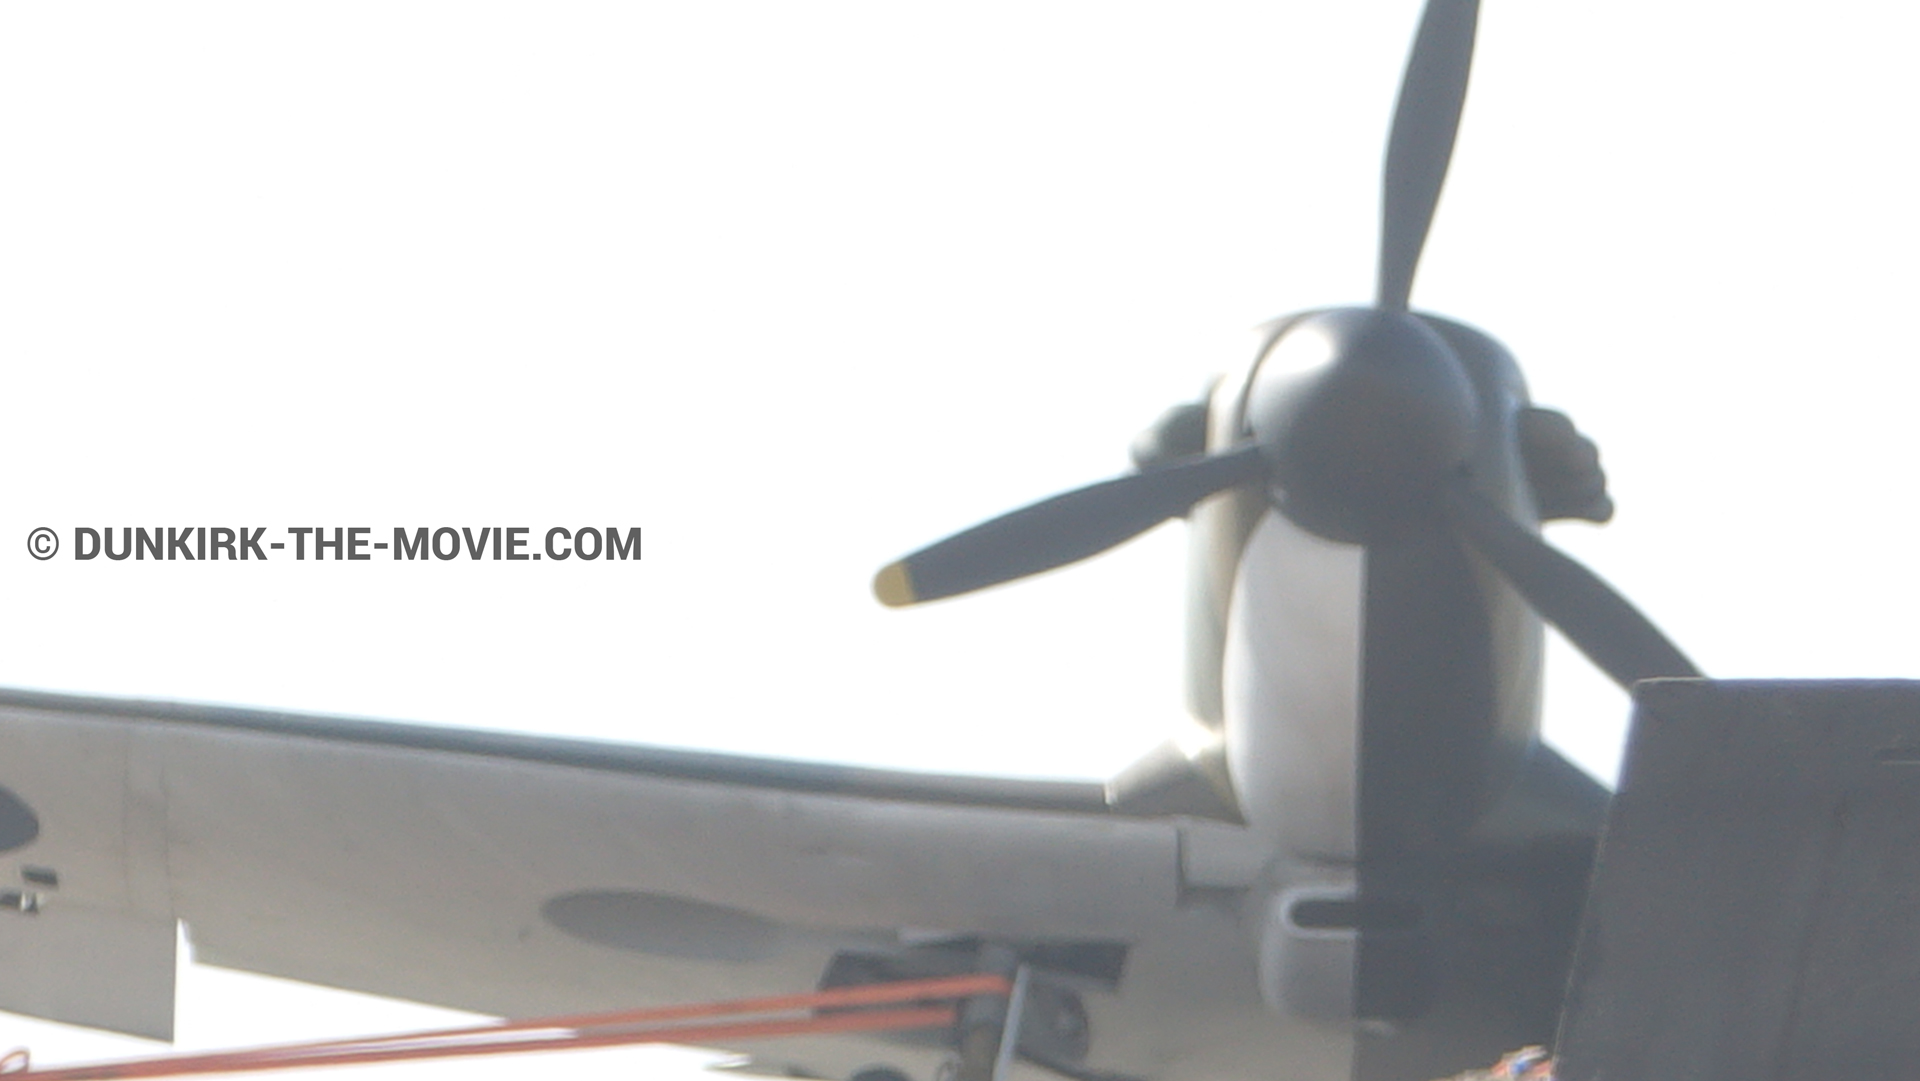 Picture with plane,  from behind the scene of the Dunkirk movie by Nolan